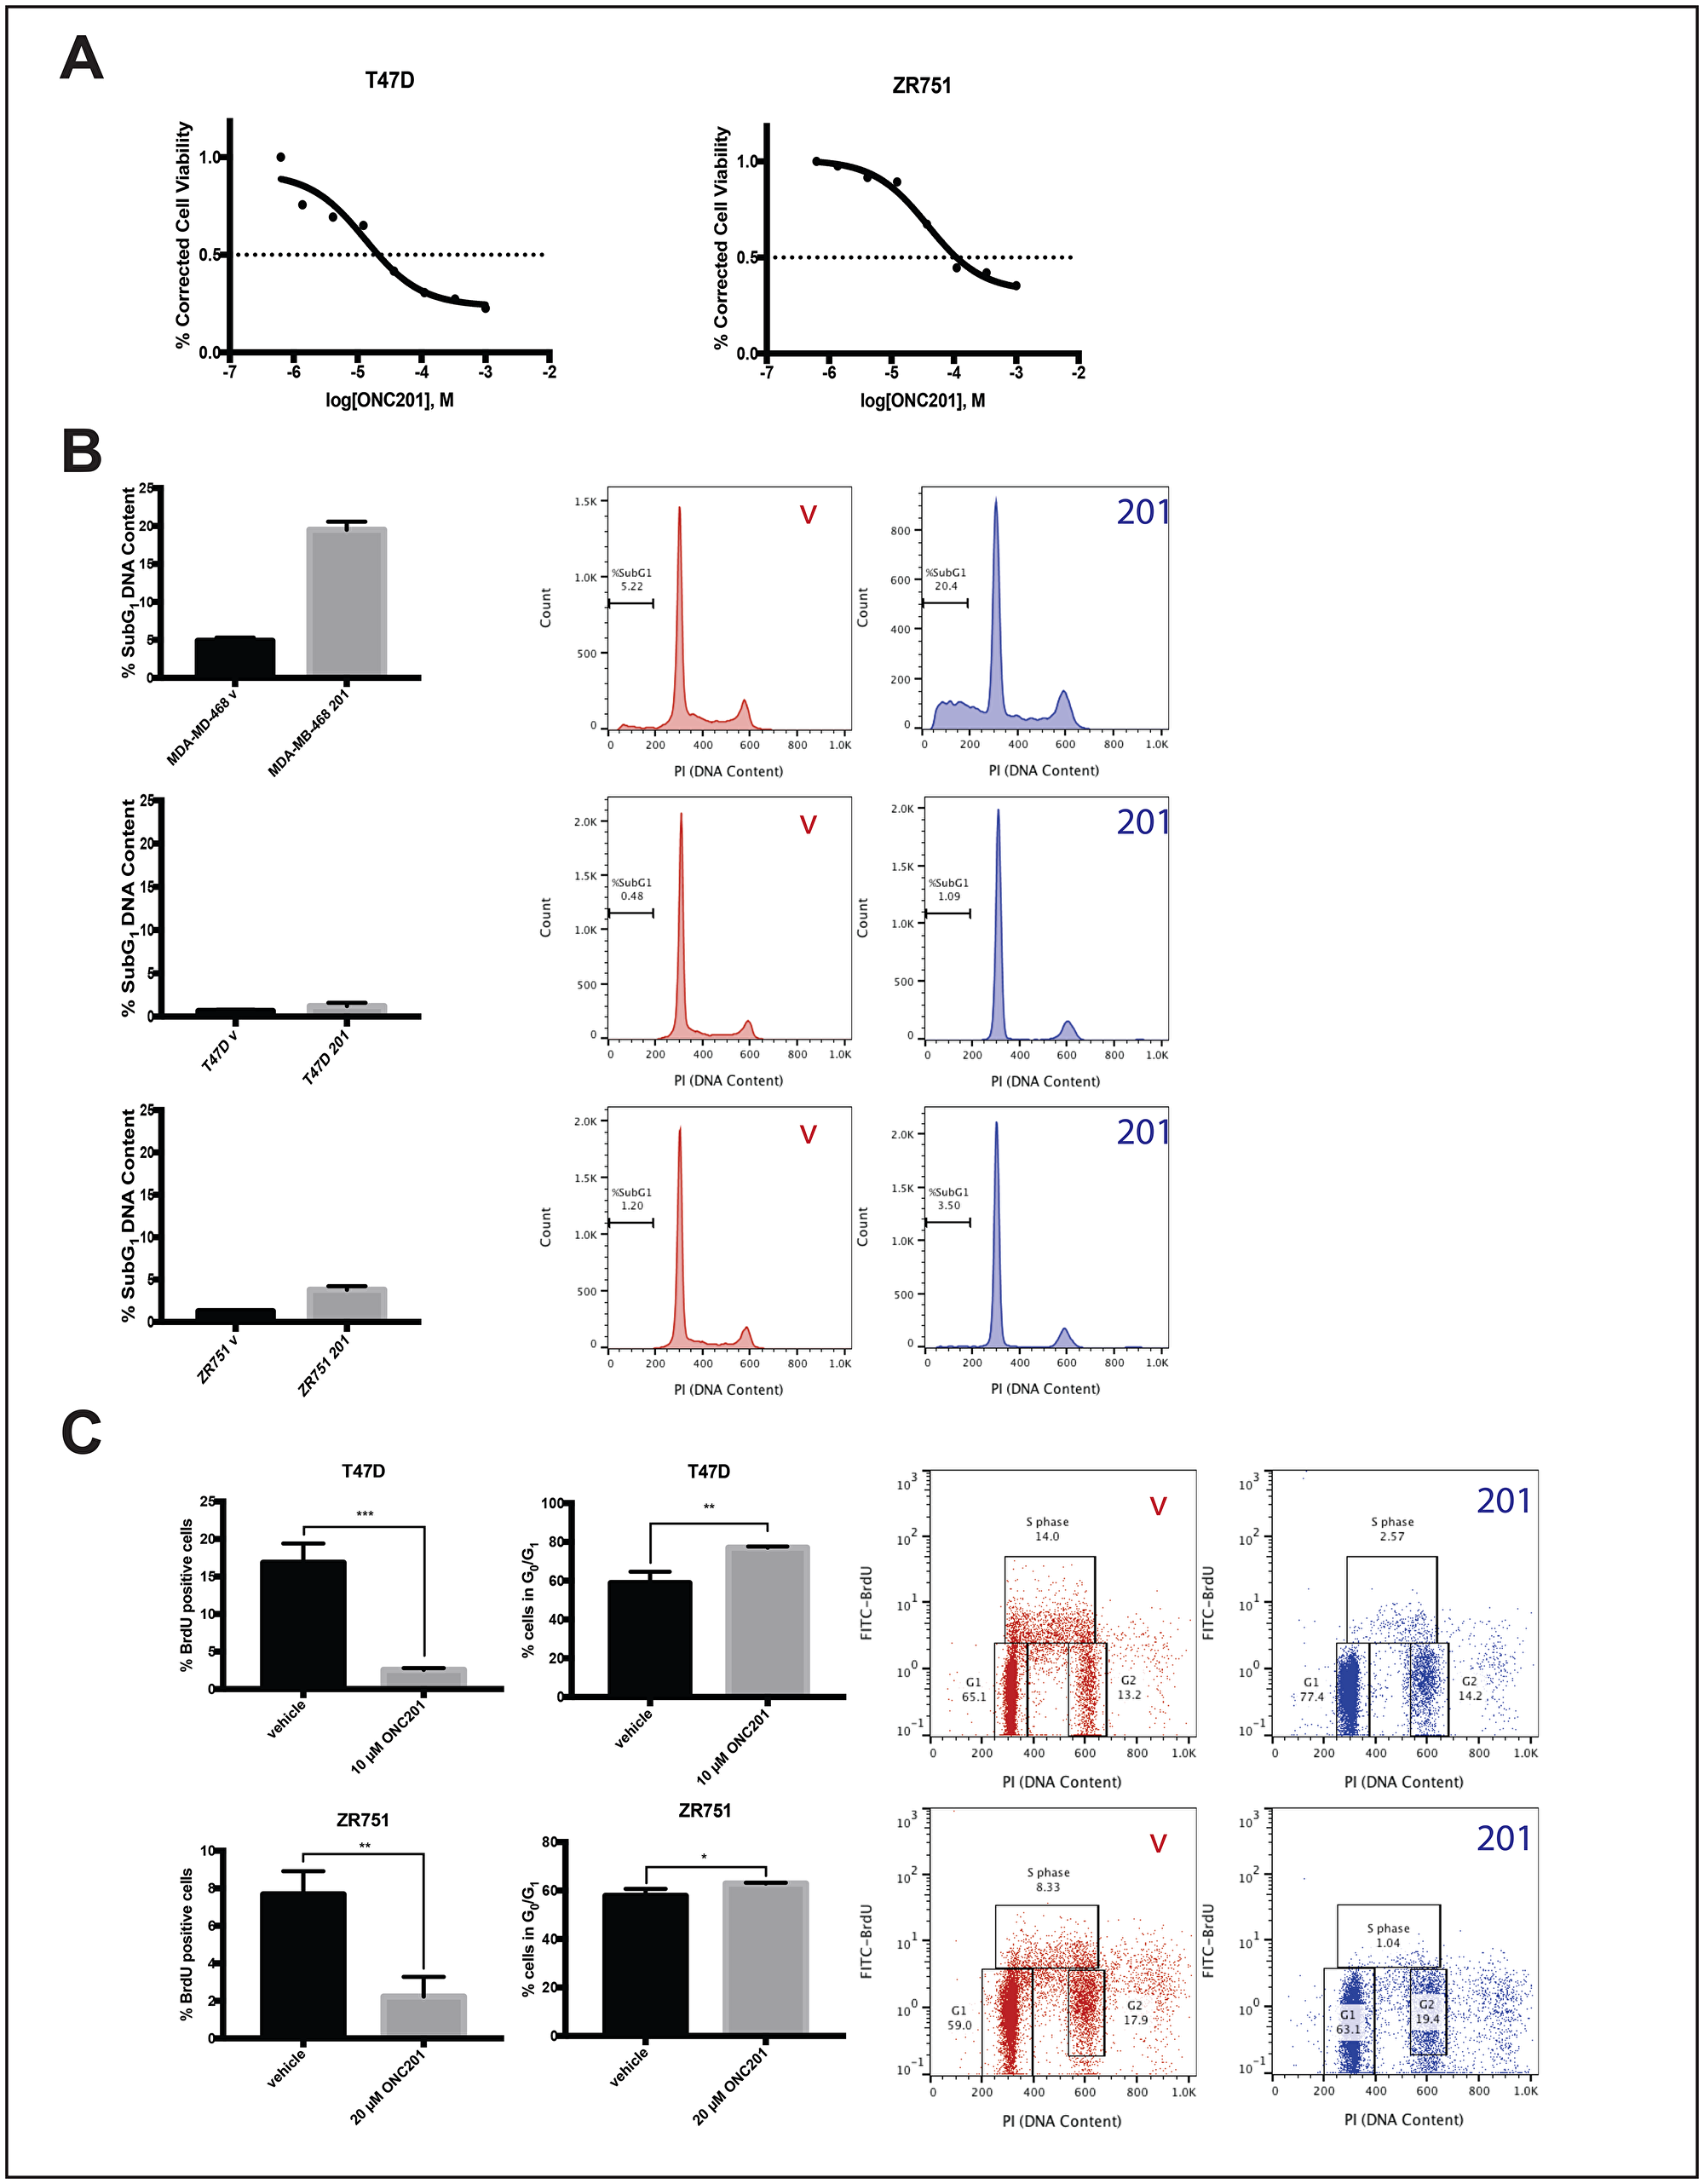 ONC201 inhibits the proliferation but does not induce apoptosis in T47D and ZR751 TRAIL-resistant non-TNBC cells.